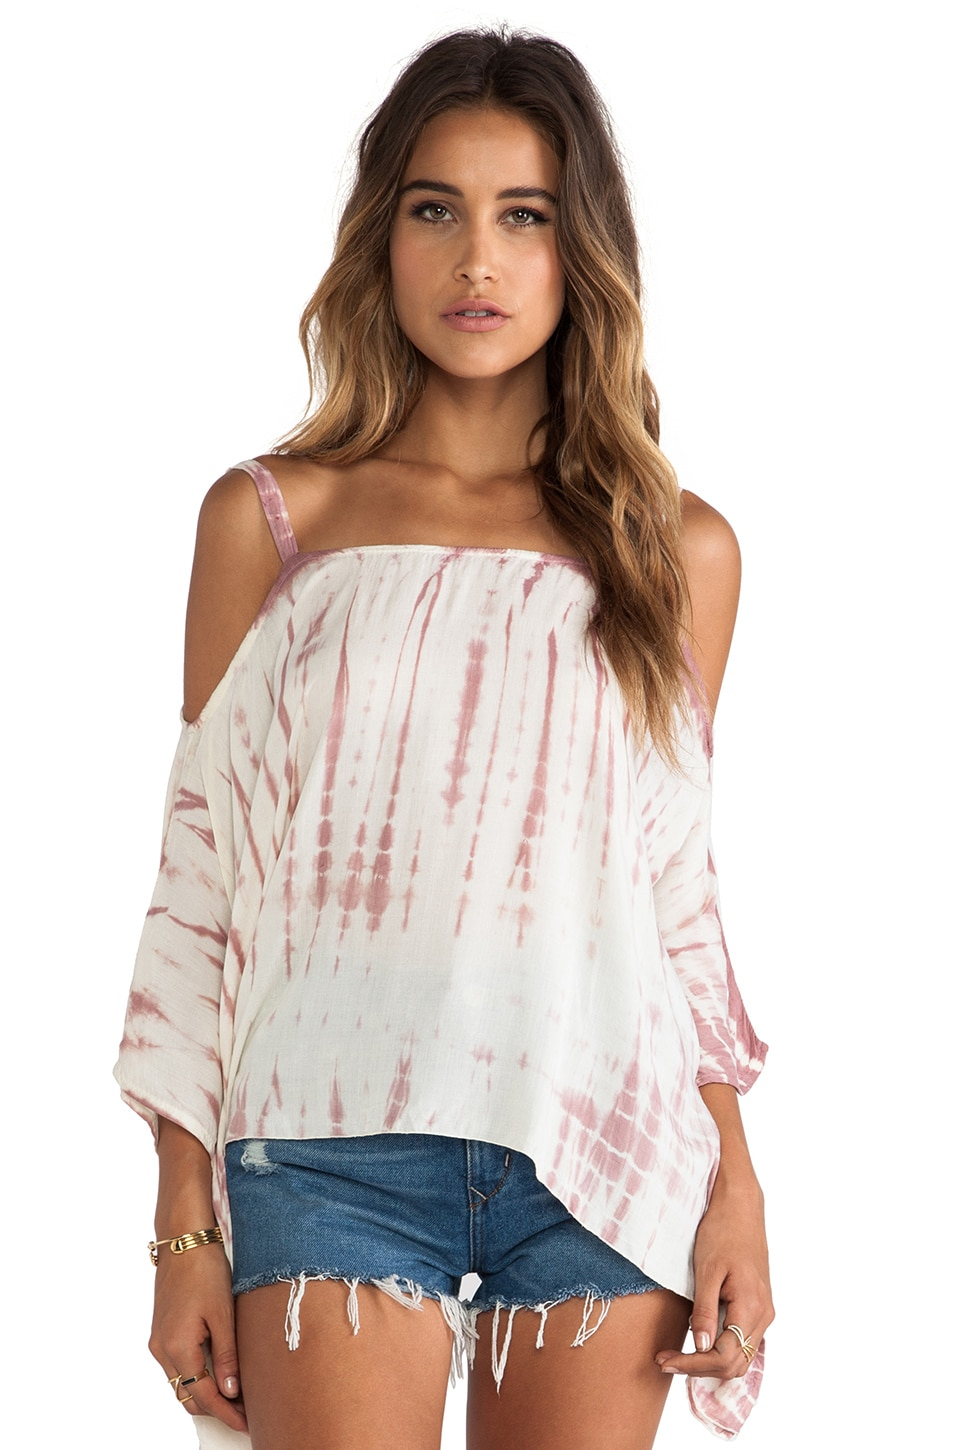 Tiare Hawaii Micah Cold Shoulder Top in Cream Skin Sabia